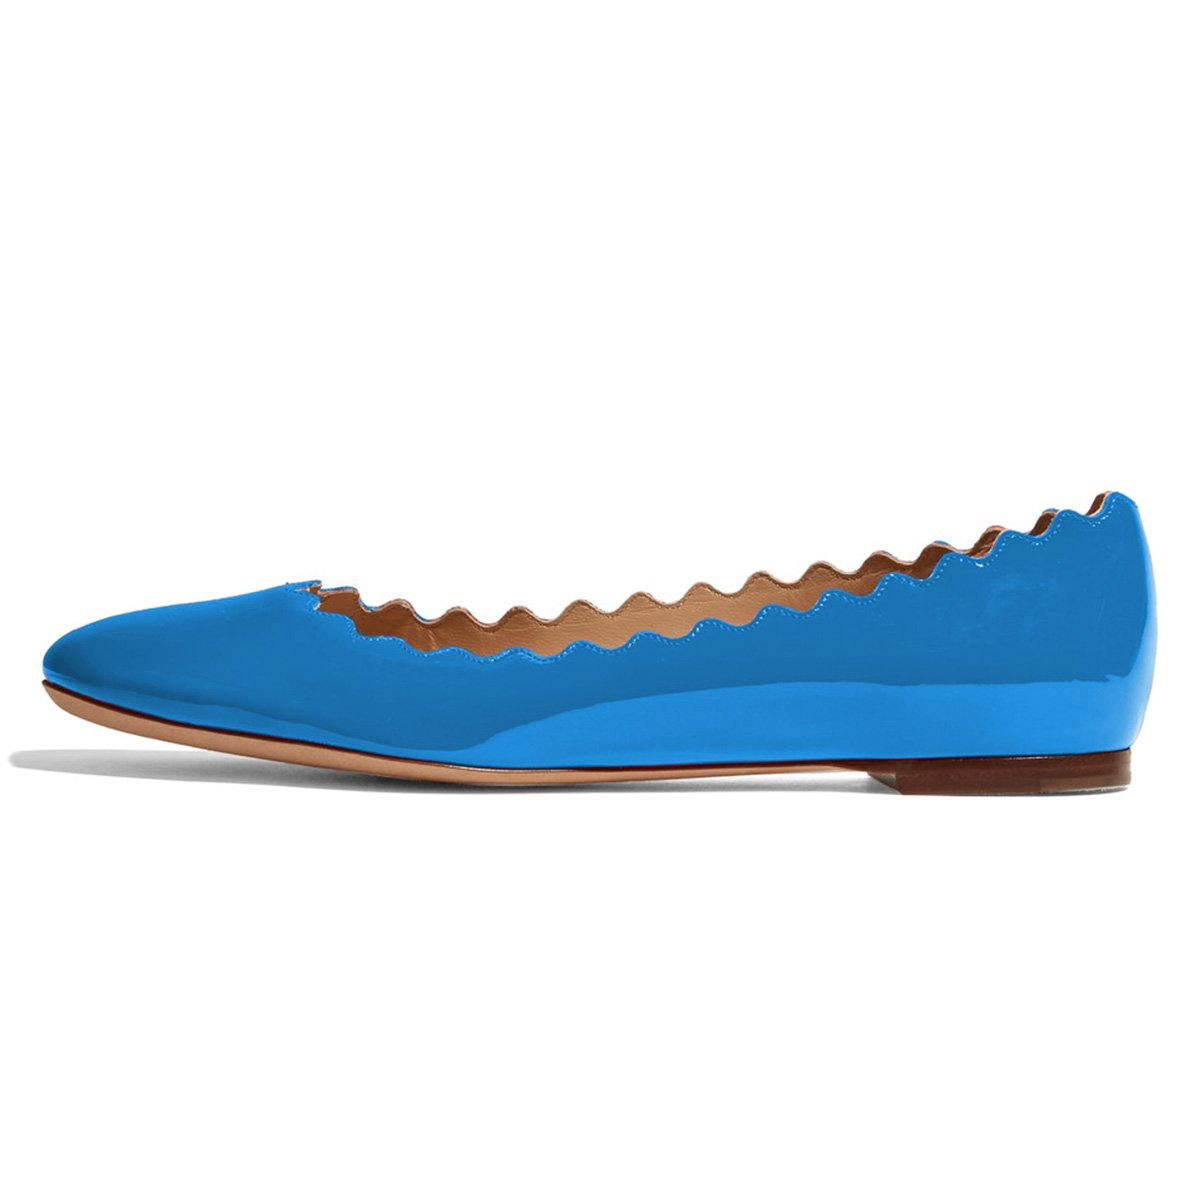 FSJ Women Cute Dress Shoes Scalloping Round Toe Suede Ballet Flats for Comfort Size 7 Blue